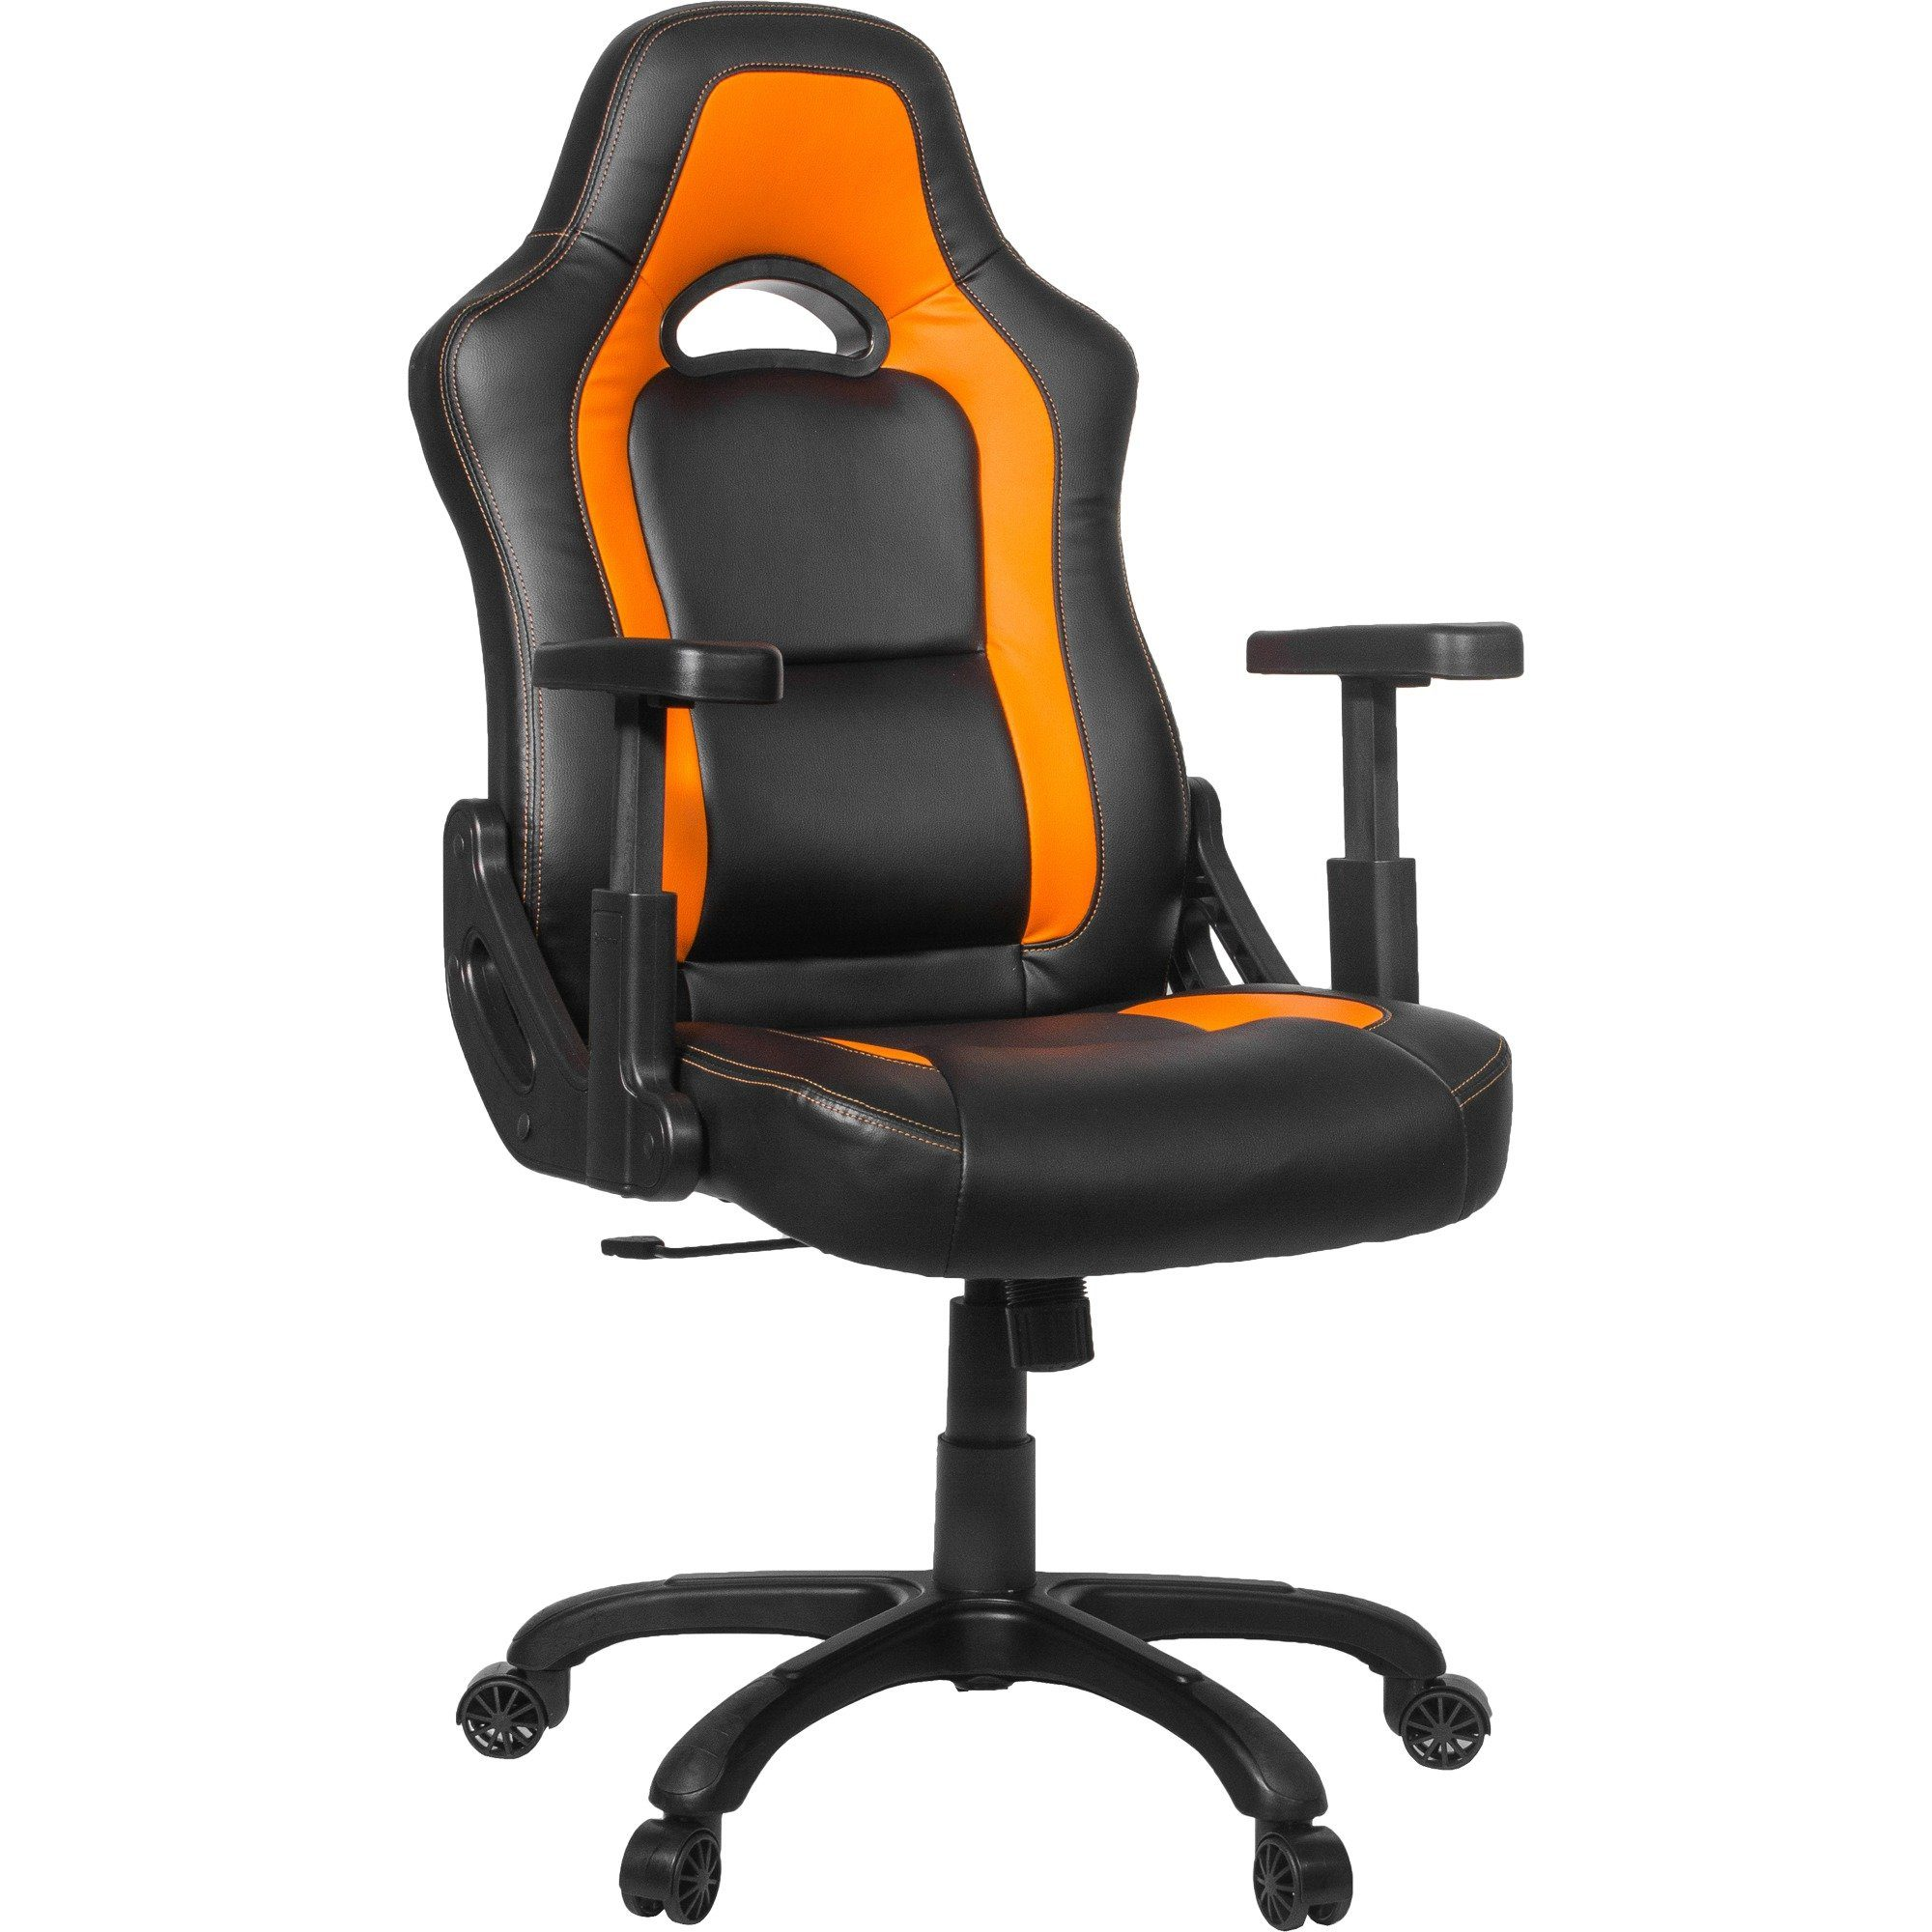 Arozzi Spielsitz »Mugello Gaming Chair Orange«